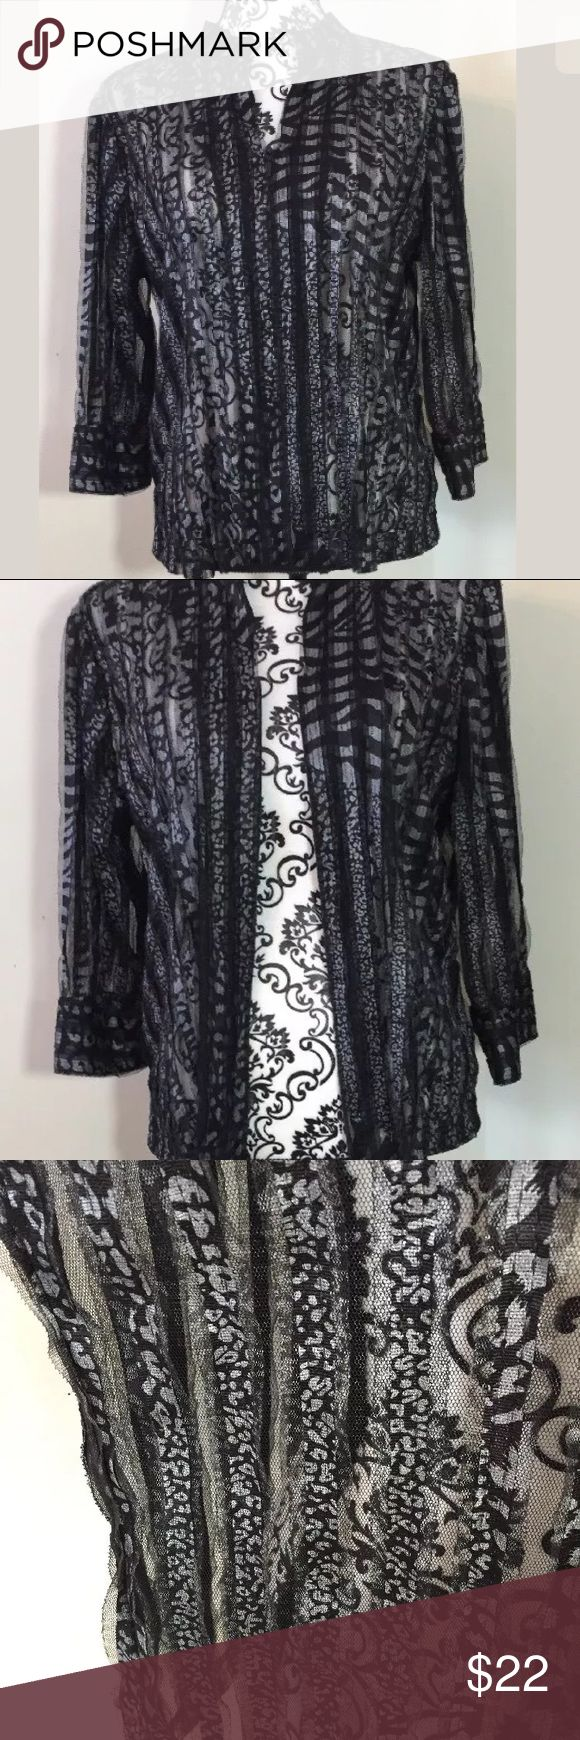 Chico's Travelers Sheer Zip Up Size 1. Semi sheer black and white zip up. Excellent condition. Smoke free home Chico's Jackets & Coats